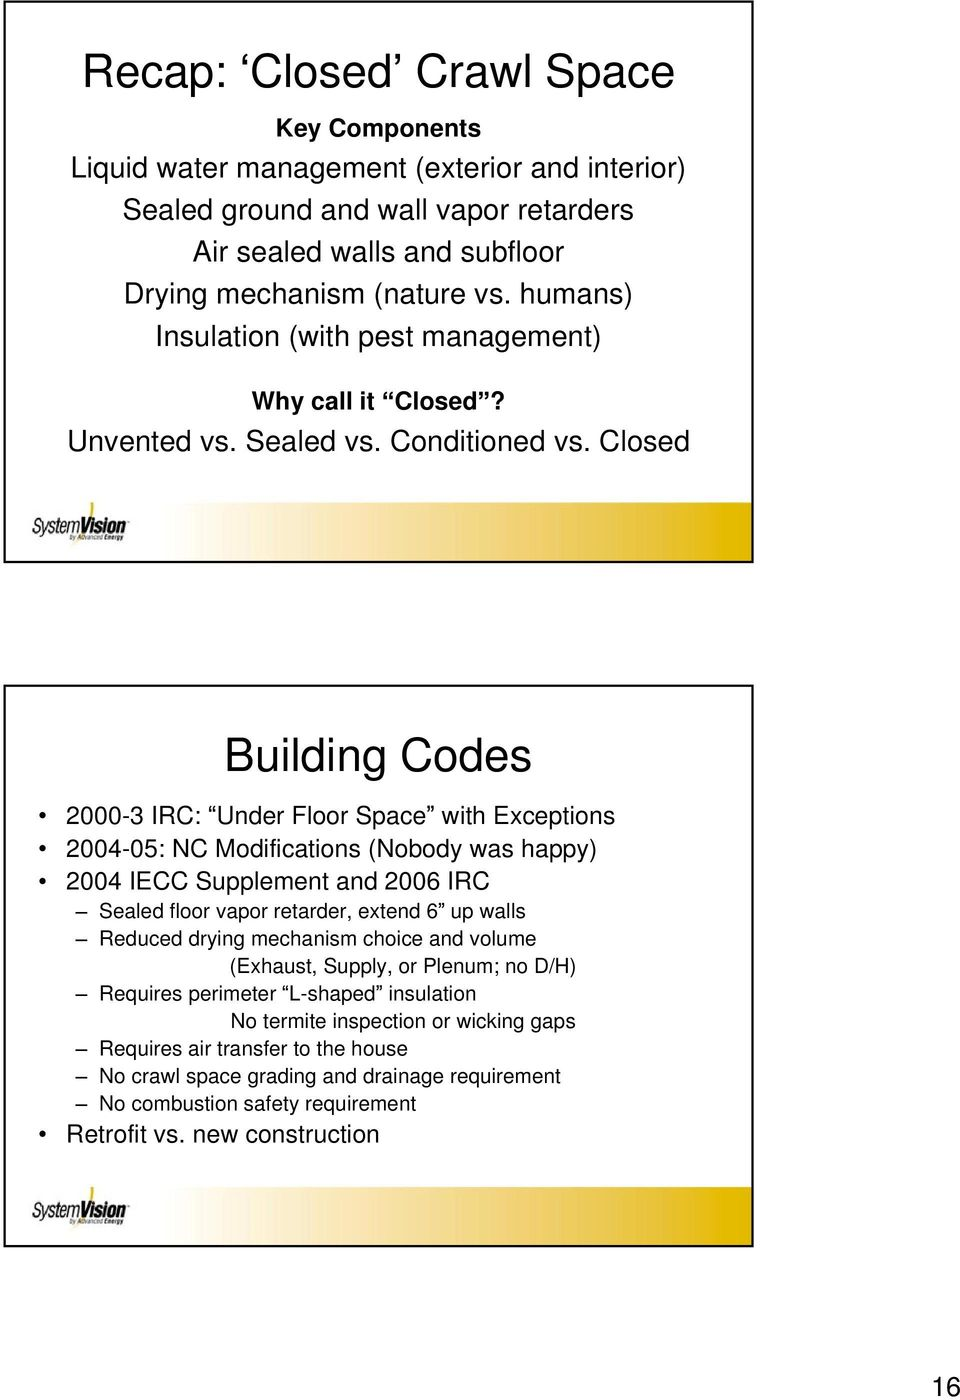 Closed Building Codes 2000-3 IRC: Under Floor Space with Exceptions 2004-05: NC Modifications (Nobody was happy) 2004 IECC Supplement and 2006 IRC Sealed floor vapor retarder, extend 6 up walls